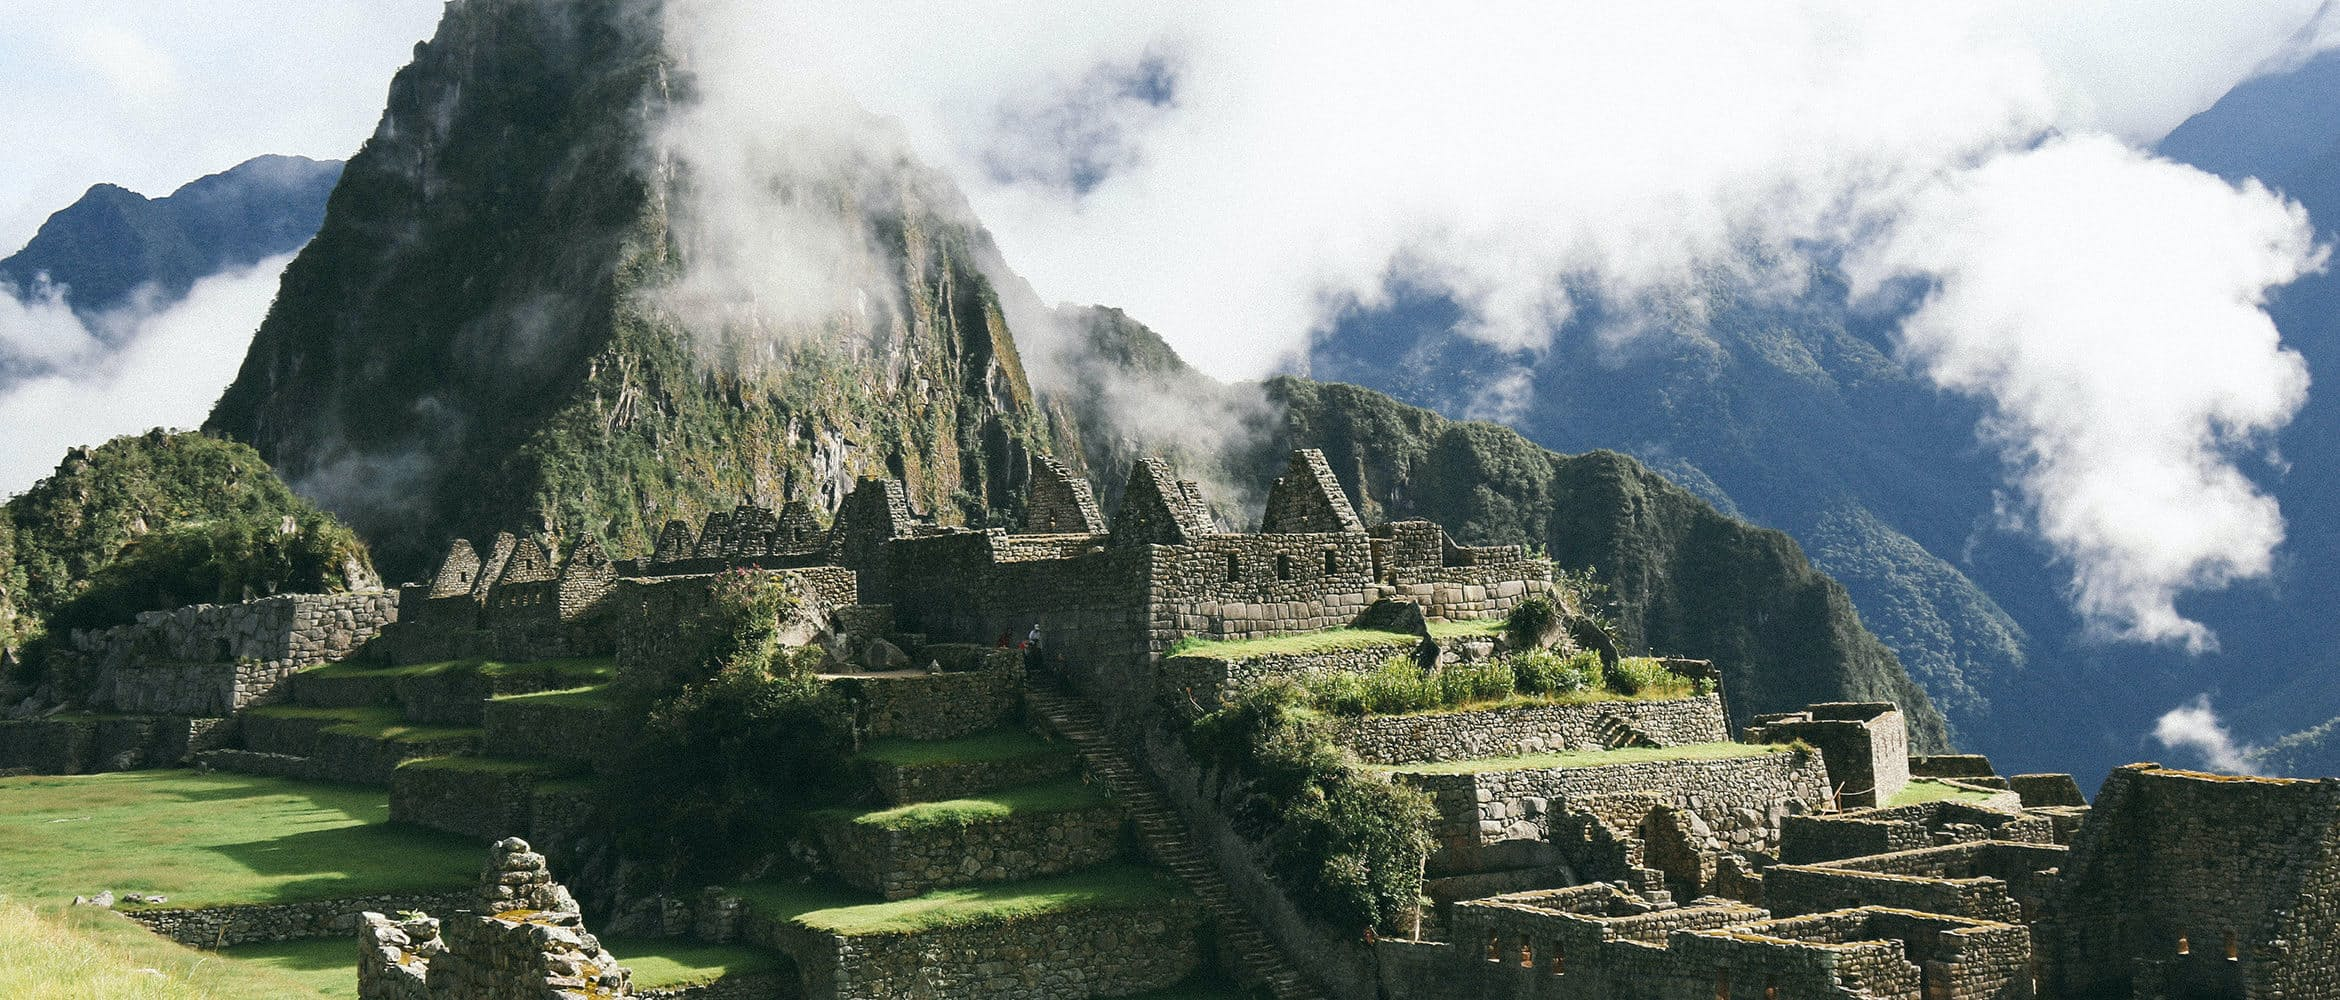 Featured 2x huckberry attainable bucket list adventure machu picchu michaela trimble header.jpg?ixlib=rails 2.1